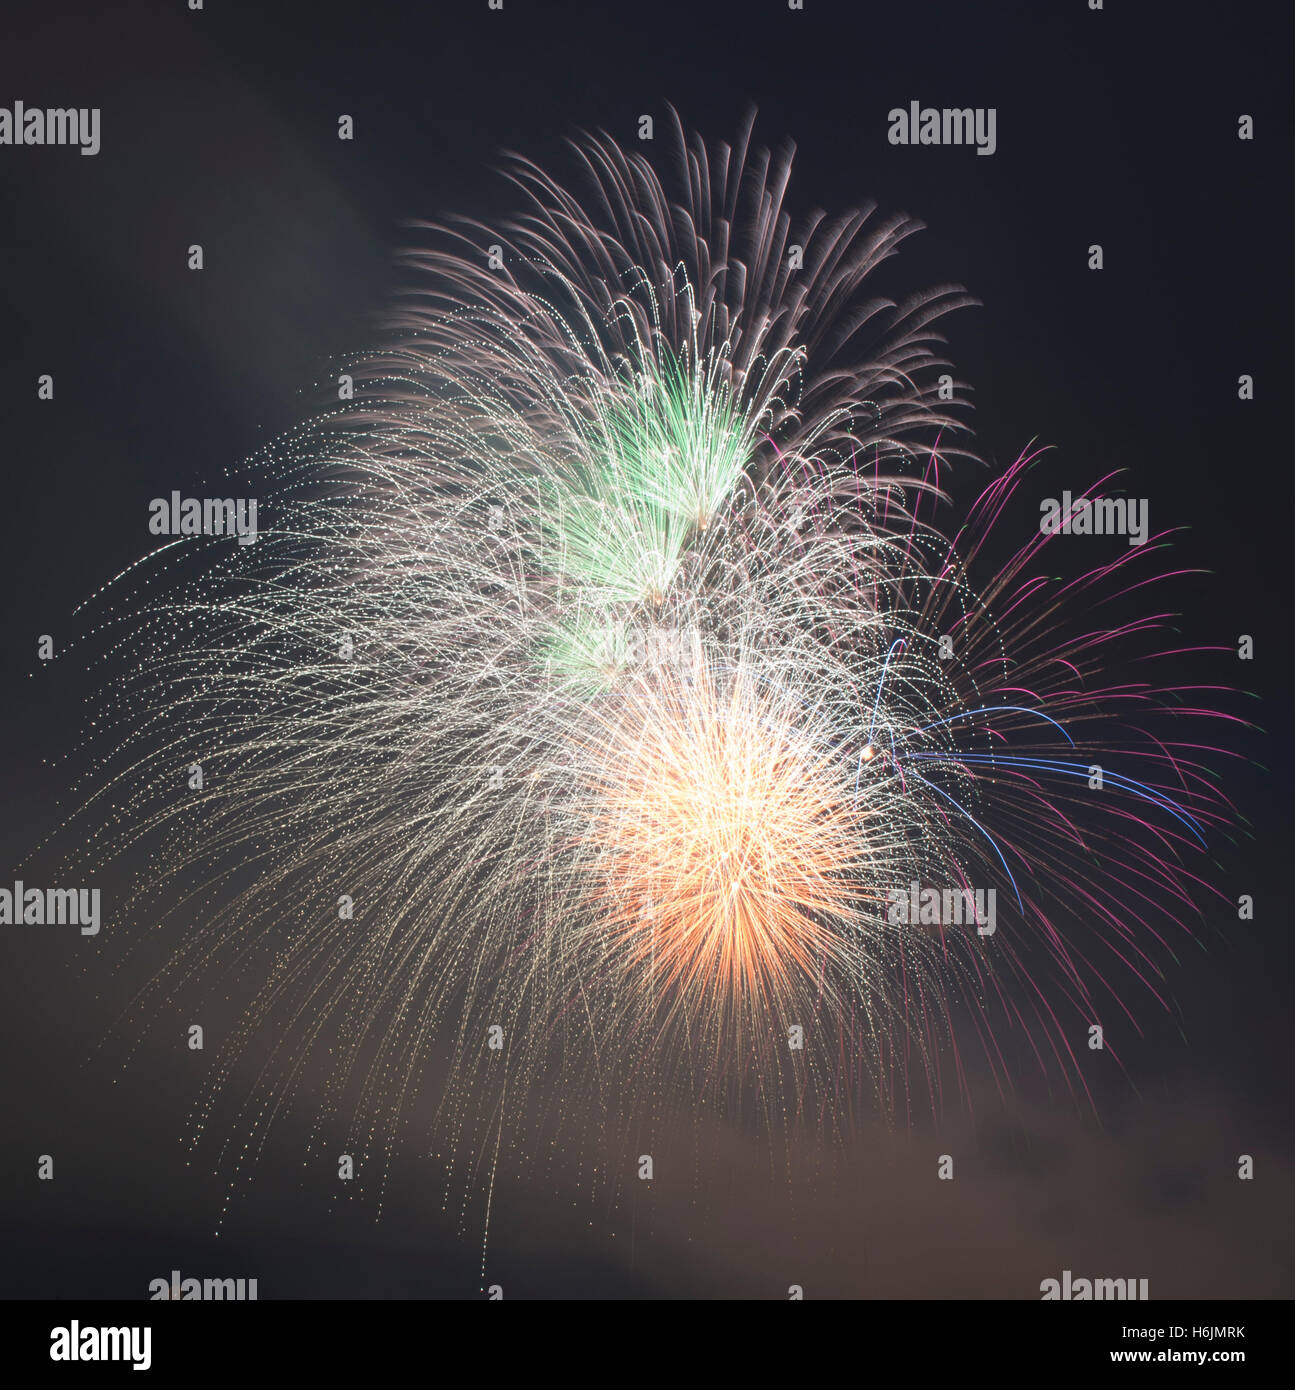 Exploding fireworks in green, orange, red and blue in a smokey night sky - Stock Image